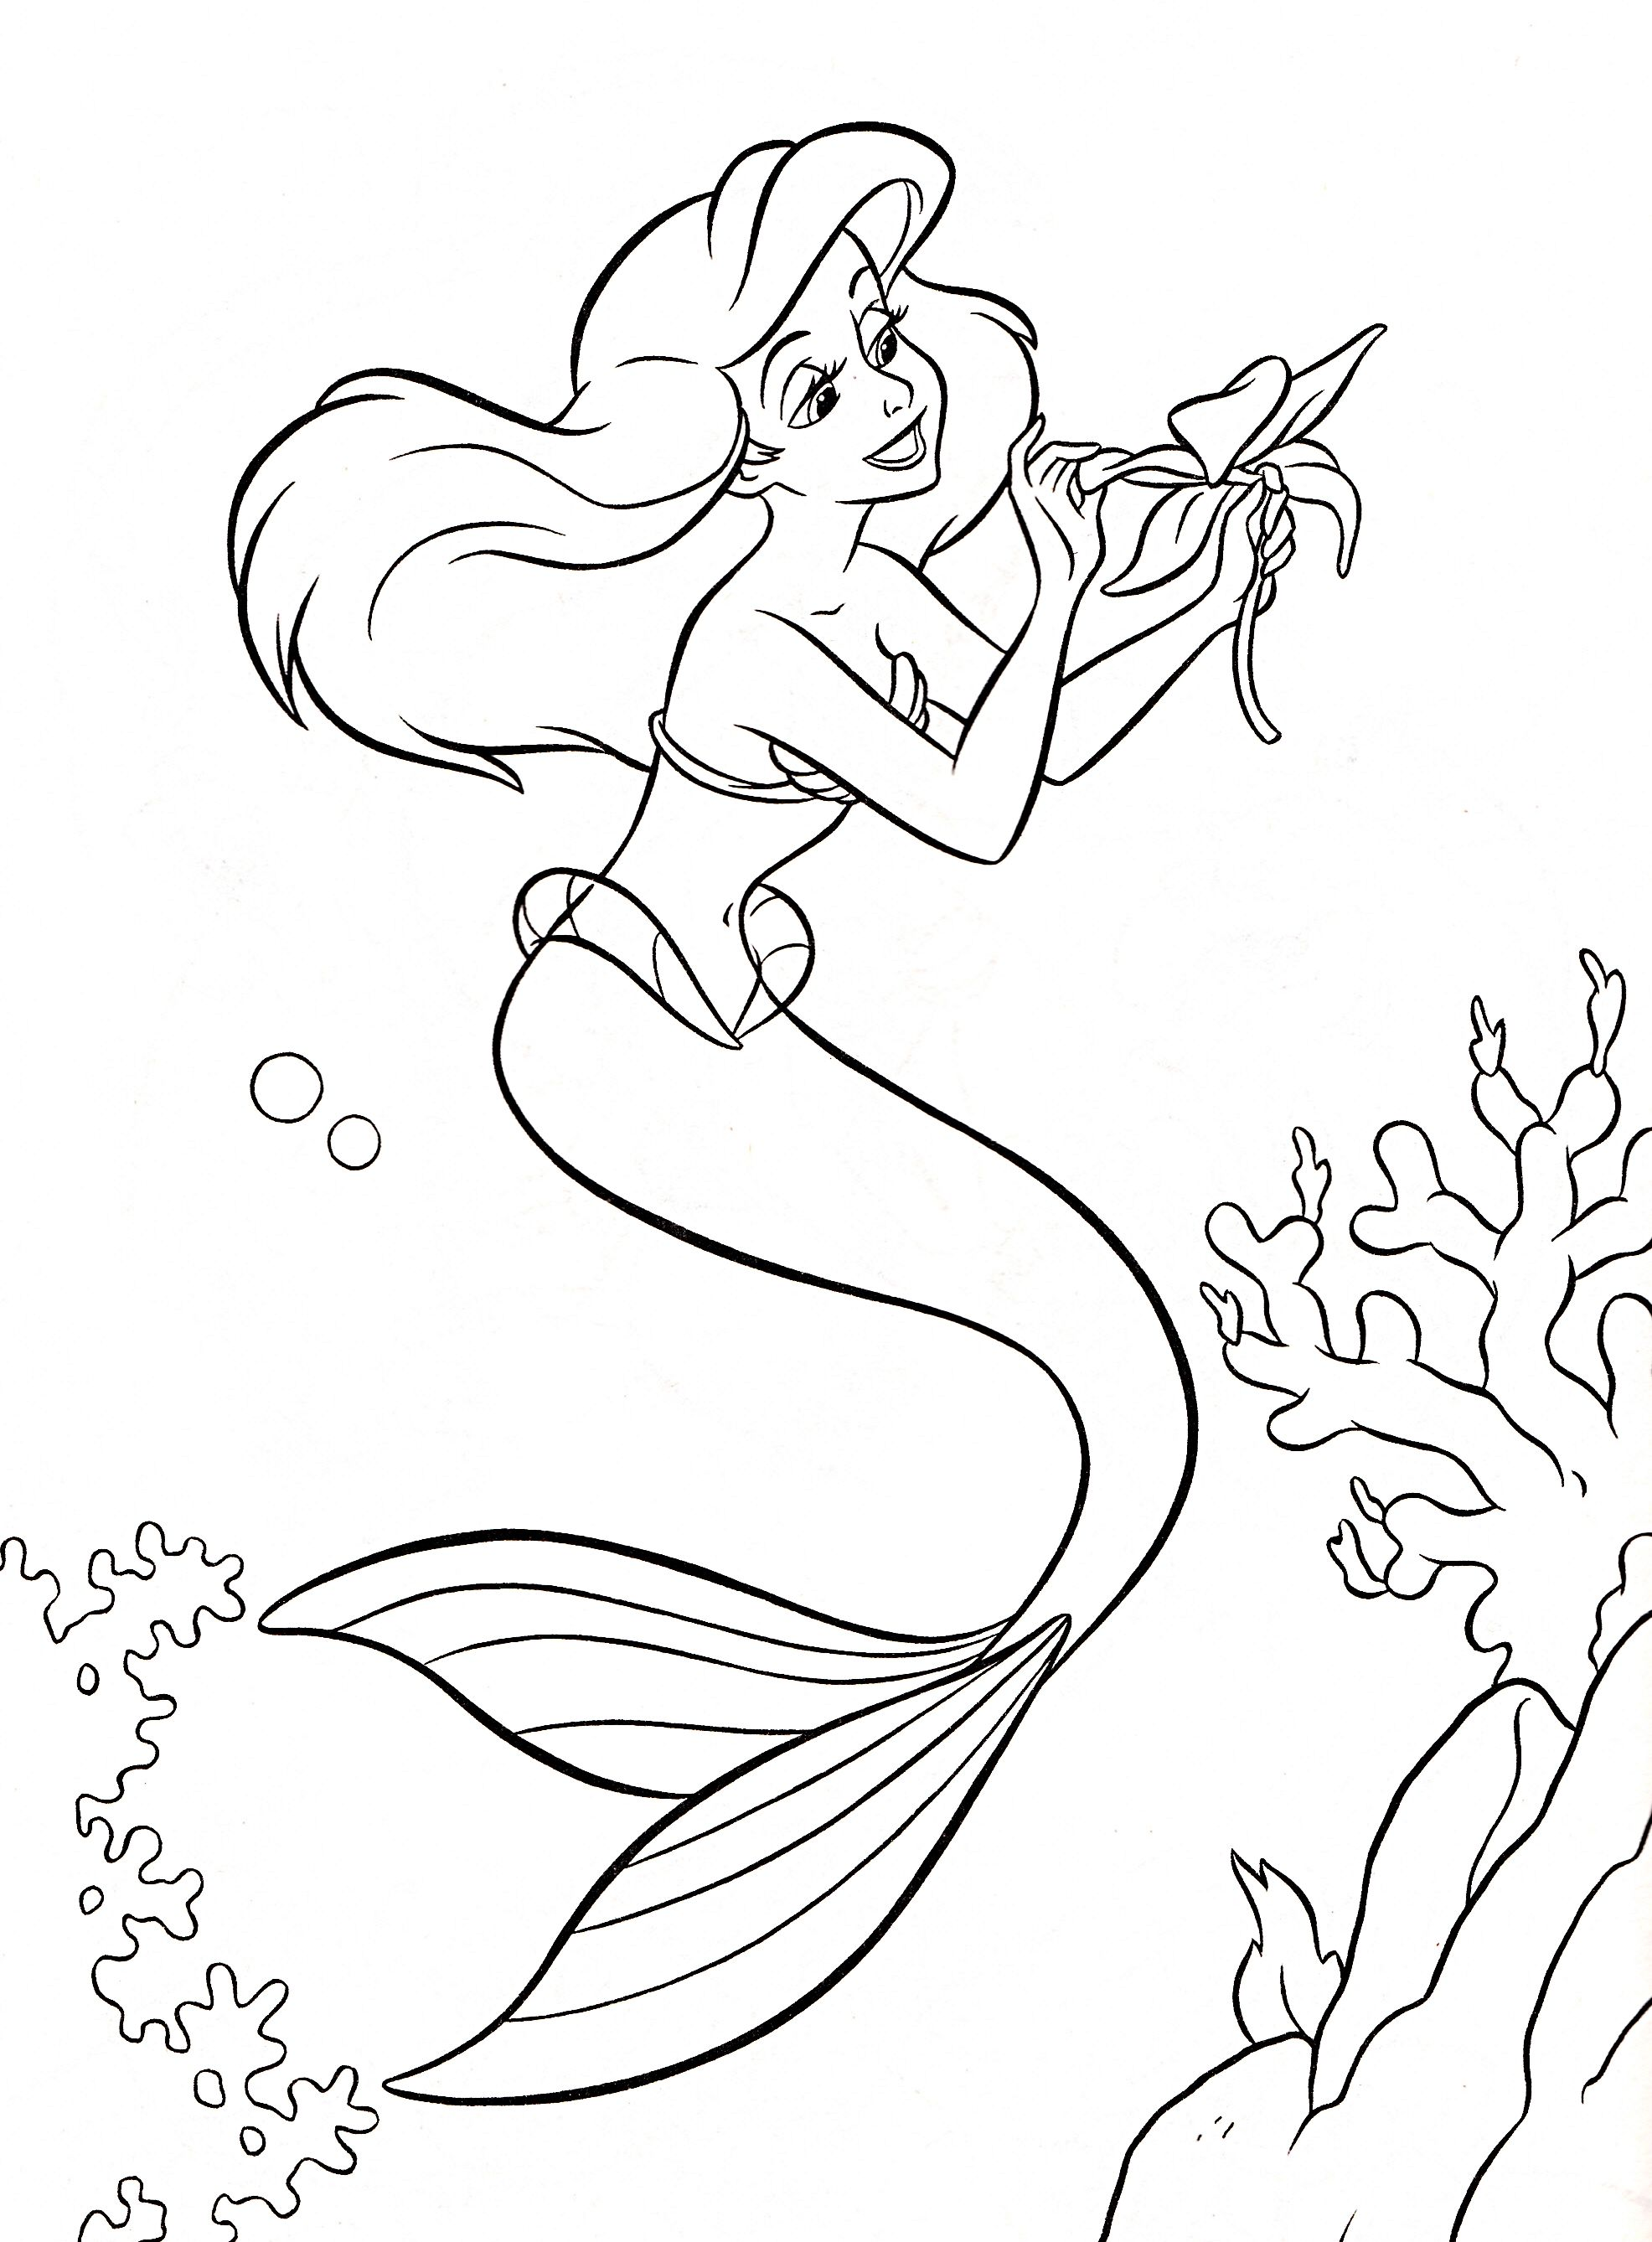 Free coloring disney princess pages - Walt Disney Coloring Pages Princess Ariel Walt Disney